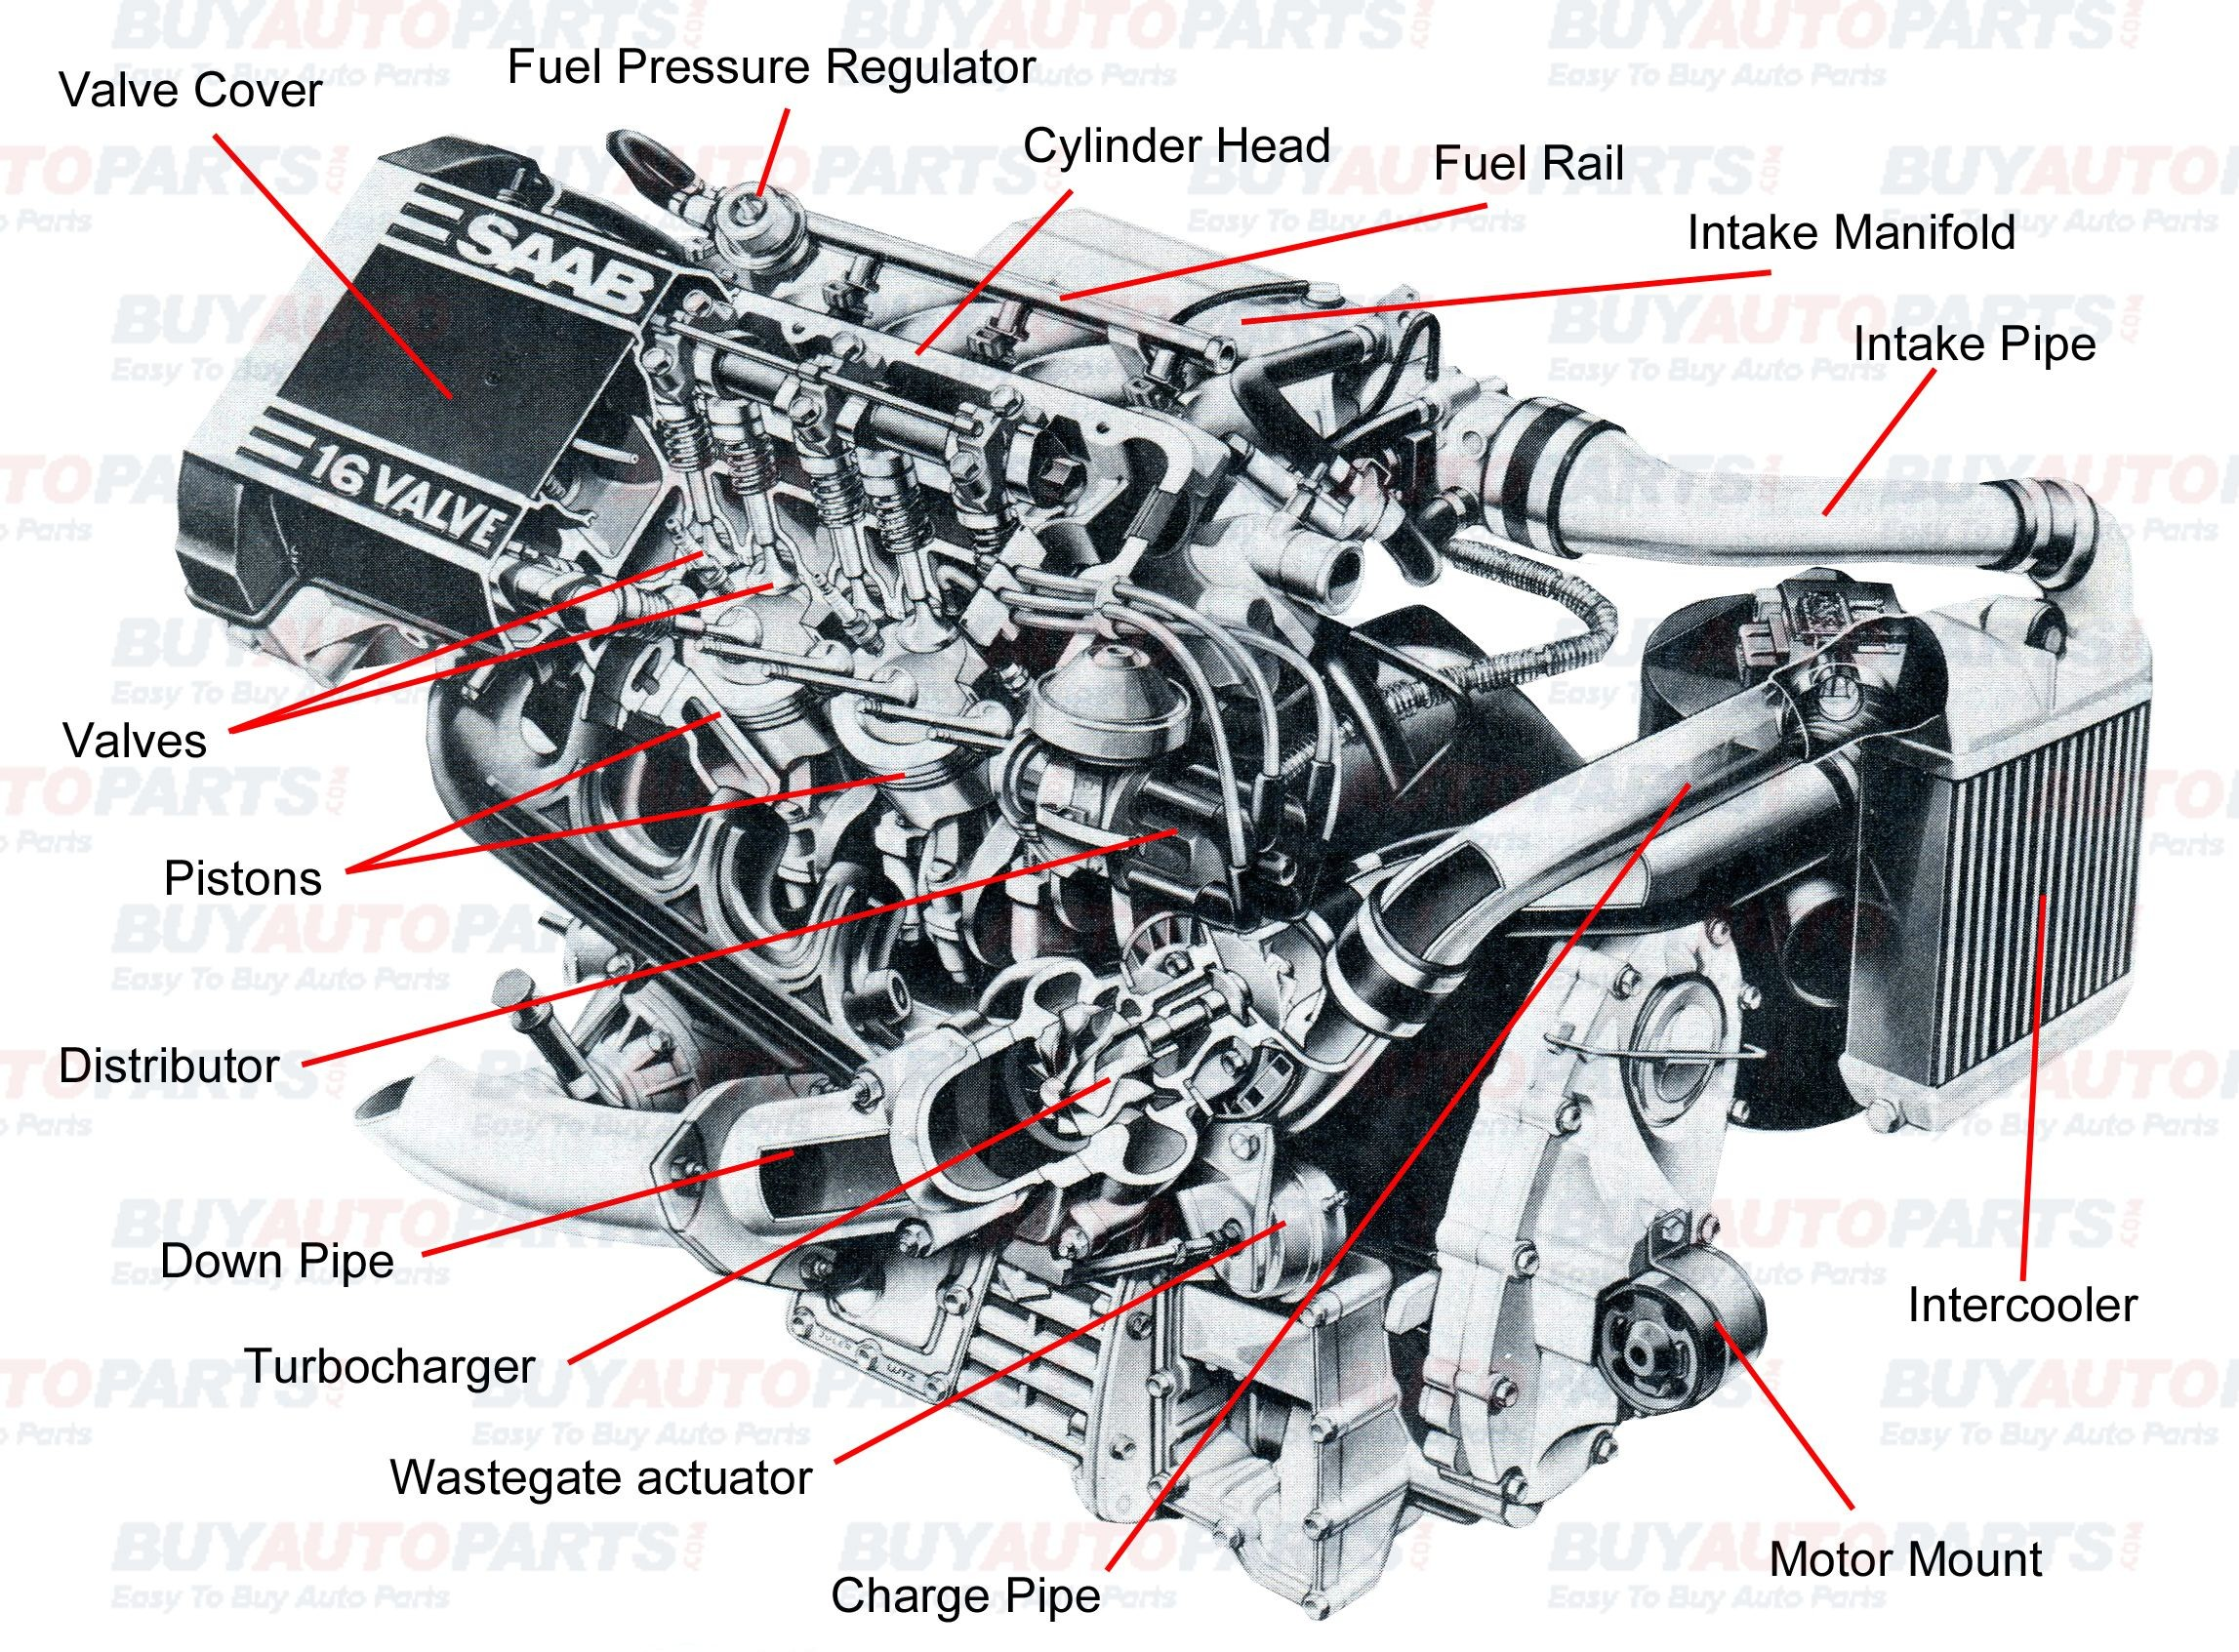 Engine Parts Diagram Names All Internal Bustion Engines Have the Same Basic Ponents the Of Engine Parts Diagram Names